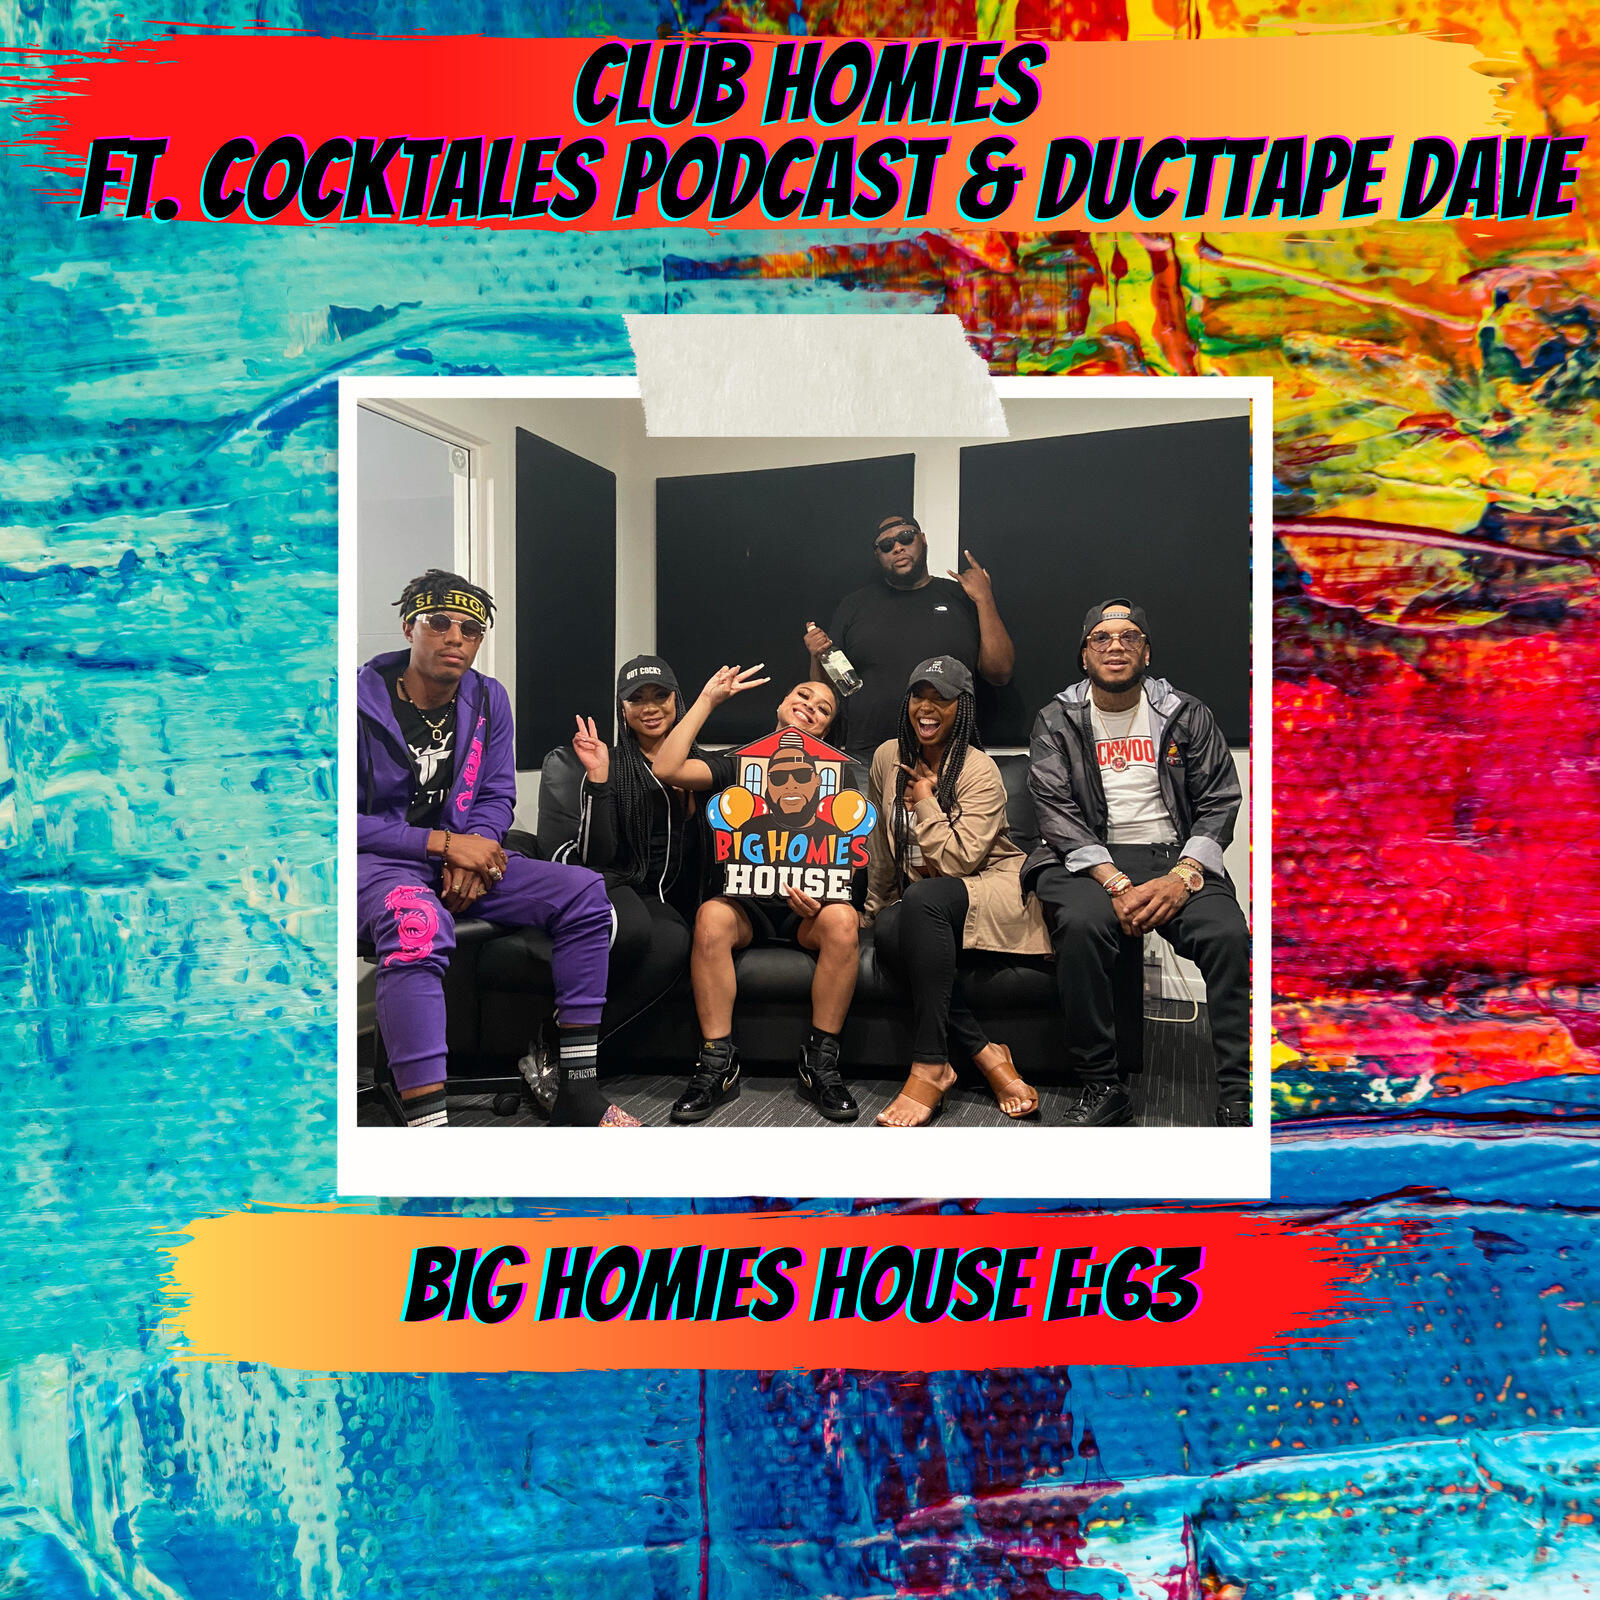 63:  Club Homies ft. Cocktales Podcast & Ducttape Dave -  Big Homies House E:63